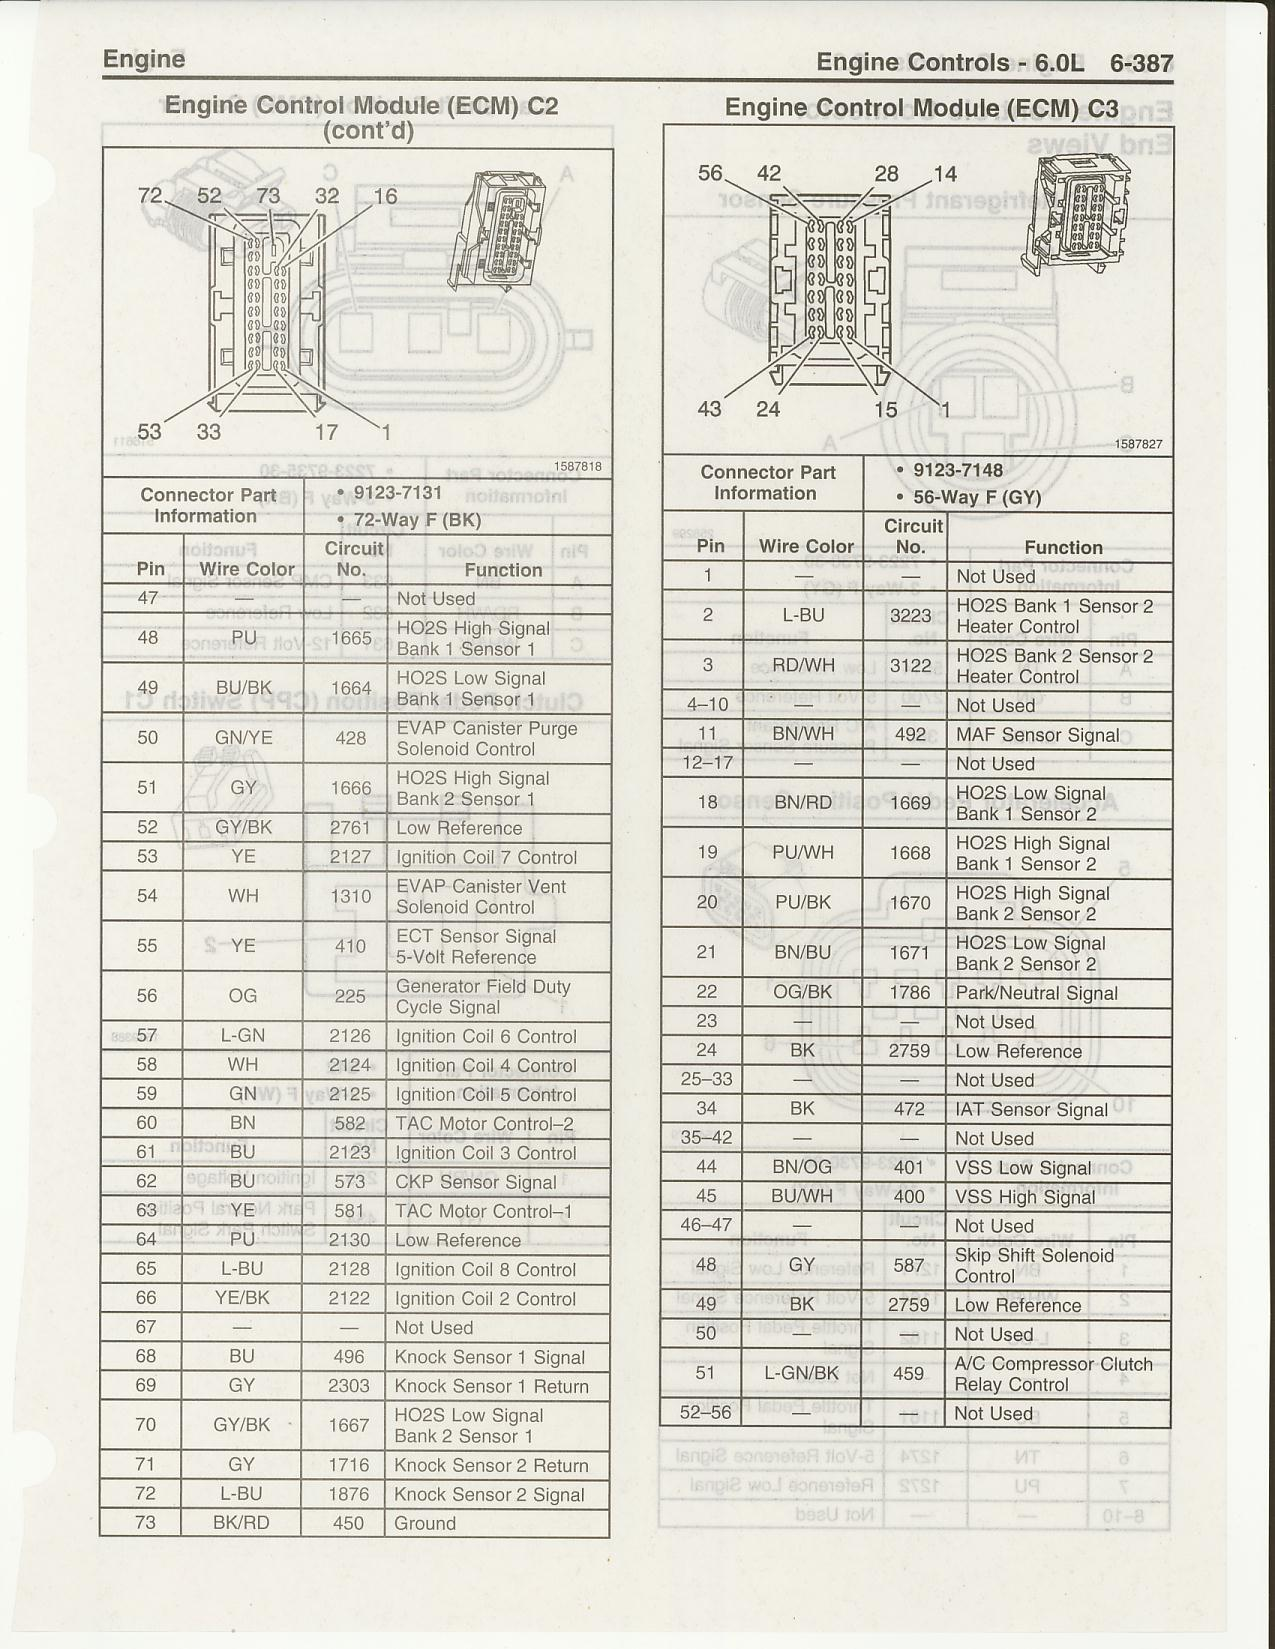 Gm Ecm Wiring Diagram Schemes Camaro Image Details Pinouts And Diagrams Page 4 Ls1tech Firebird 1988